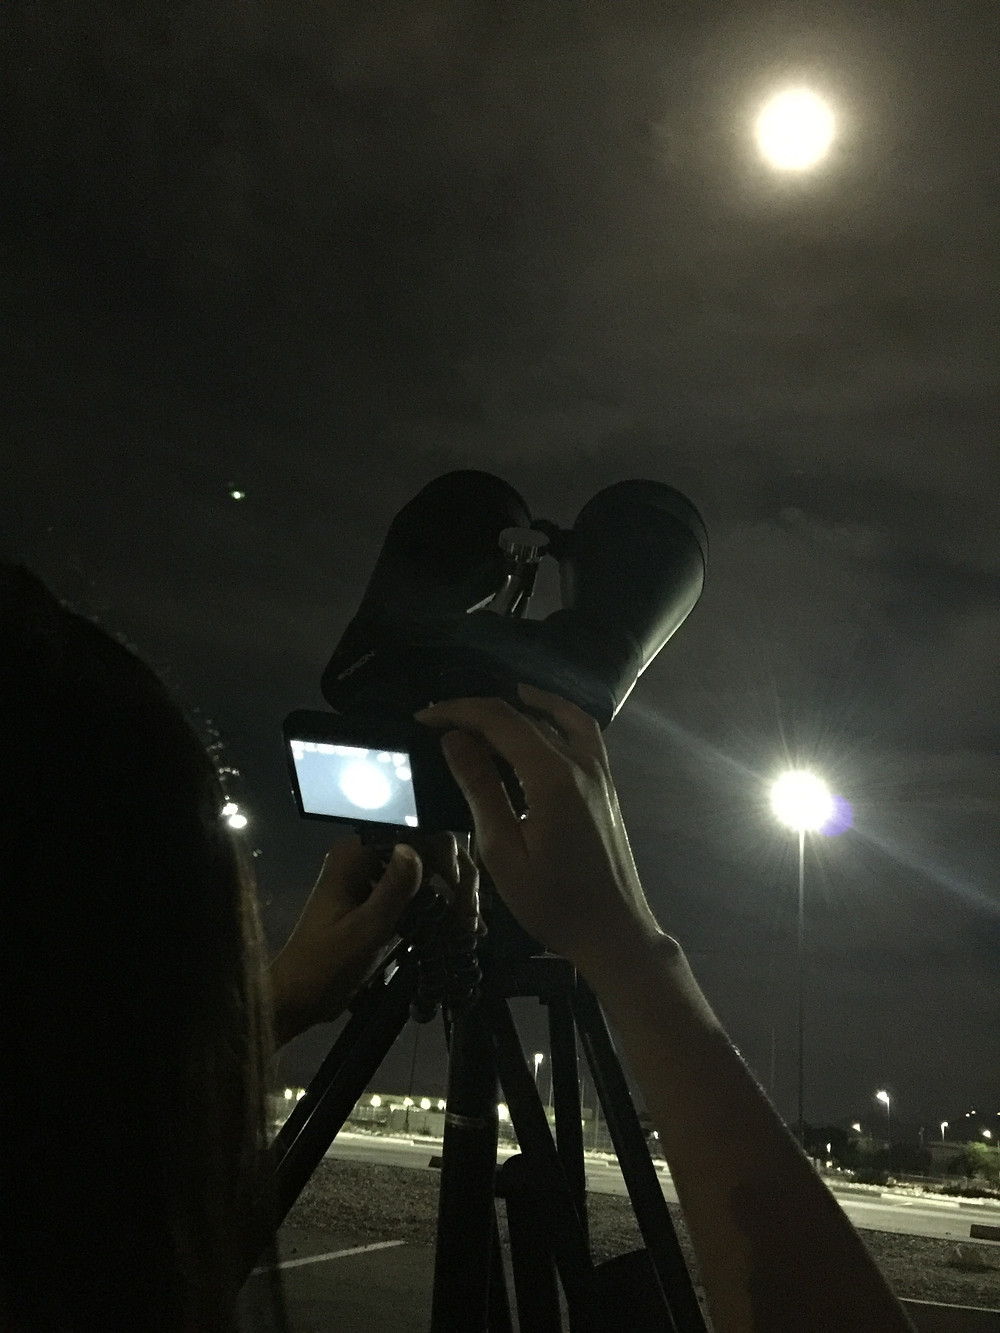 Photographing the Moon with a small point and shoot camera and Orion 20x80 astronomical binoculars